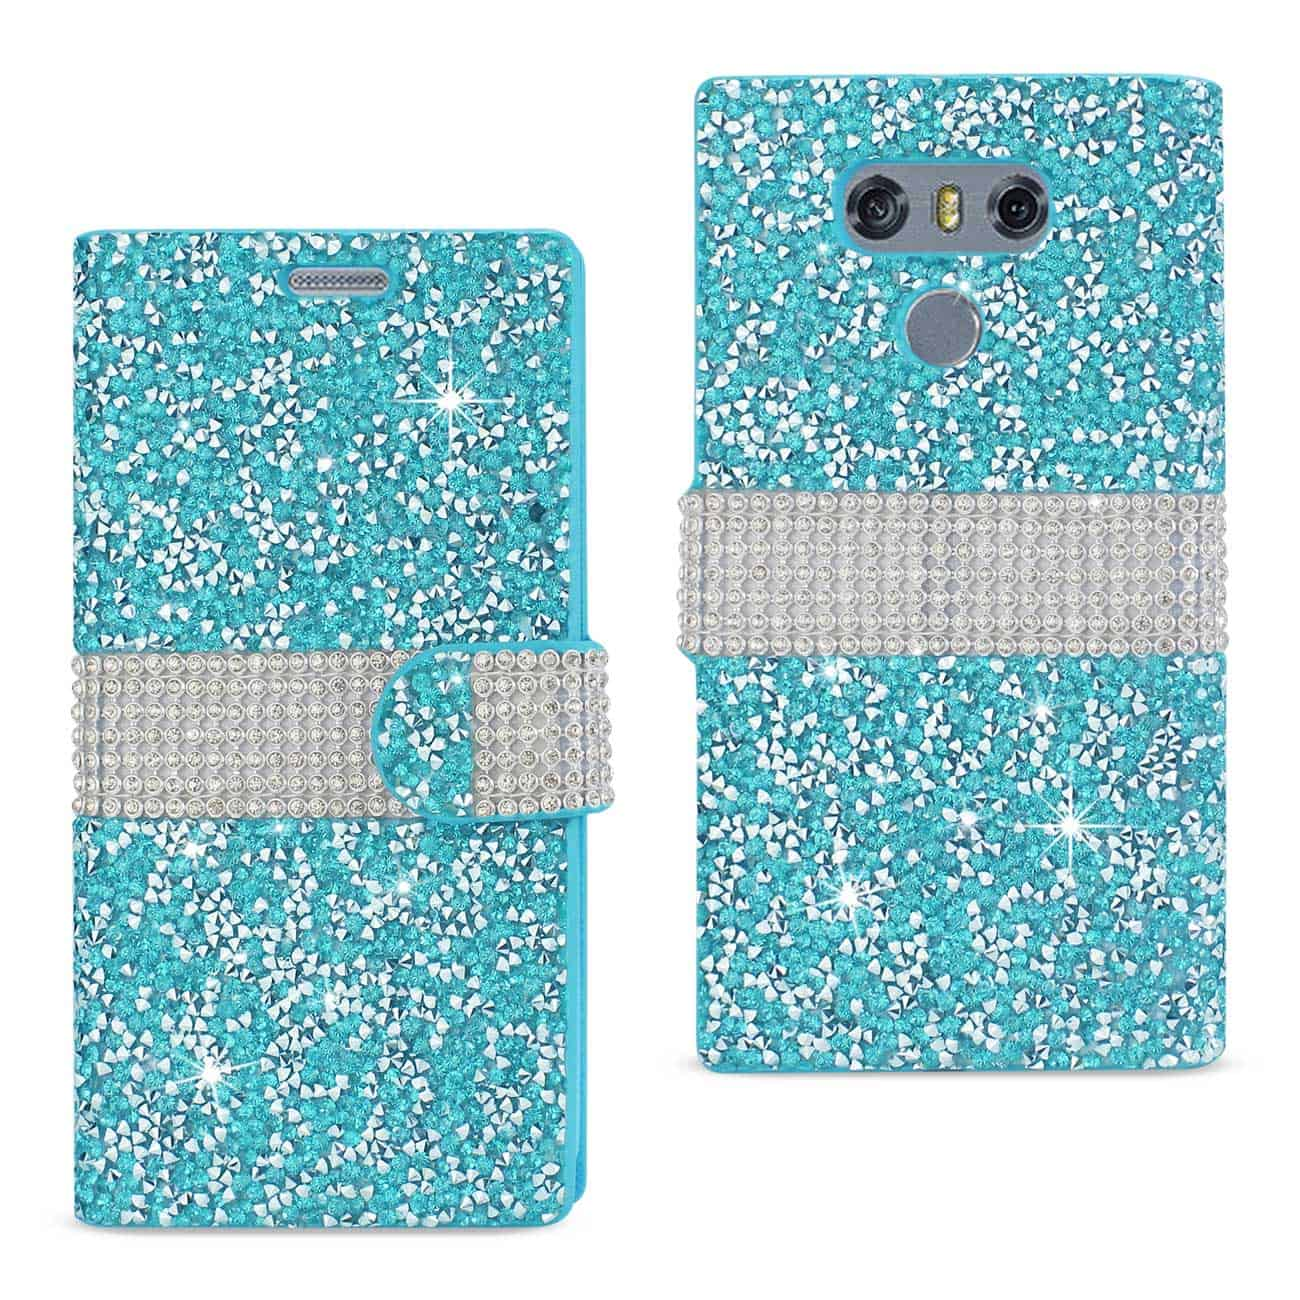 LG G6 DIAMOND RHINESTONE WALLET CASE IN BLUE